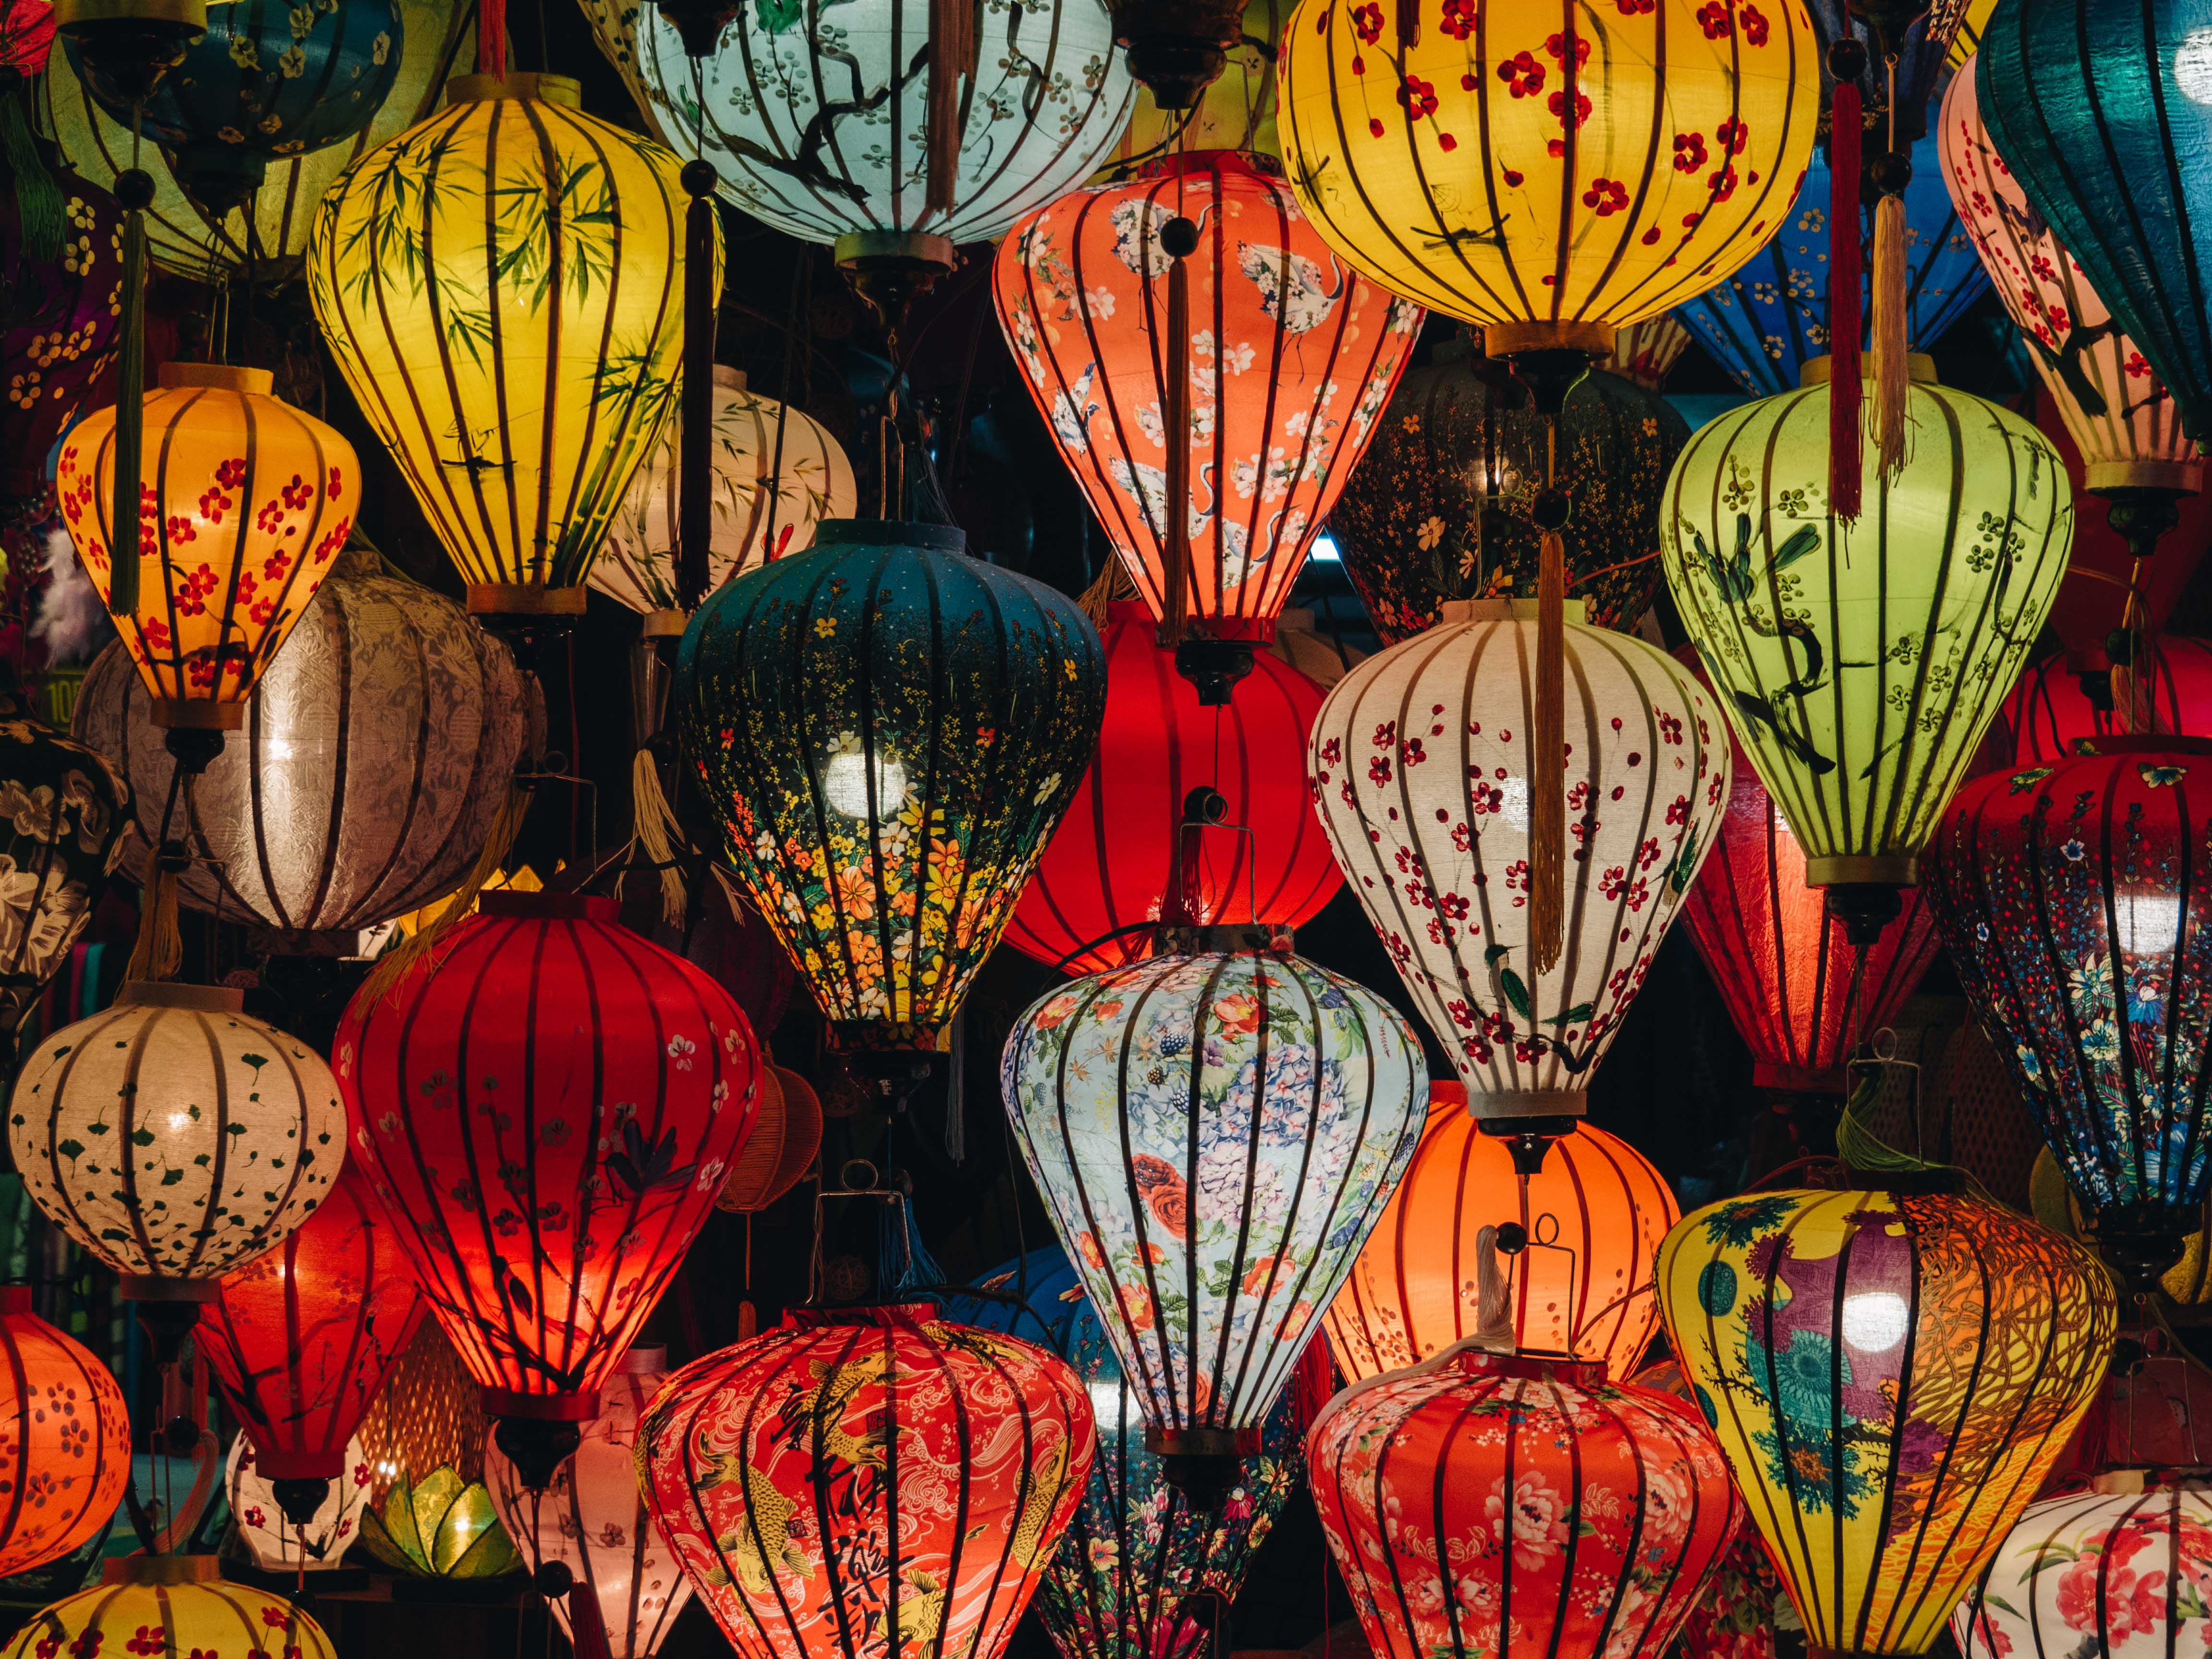 Image for blog article: Hoi An